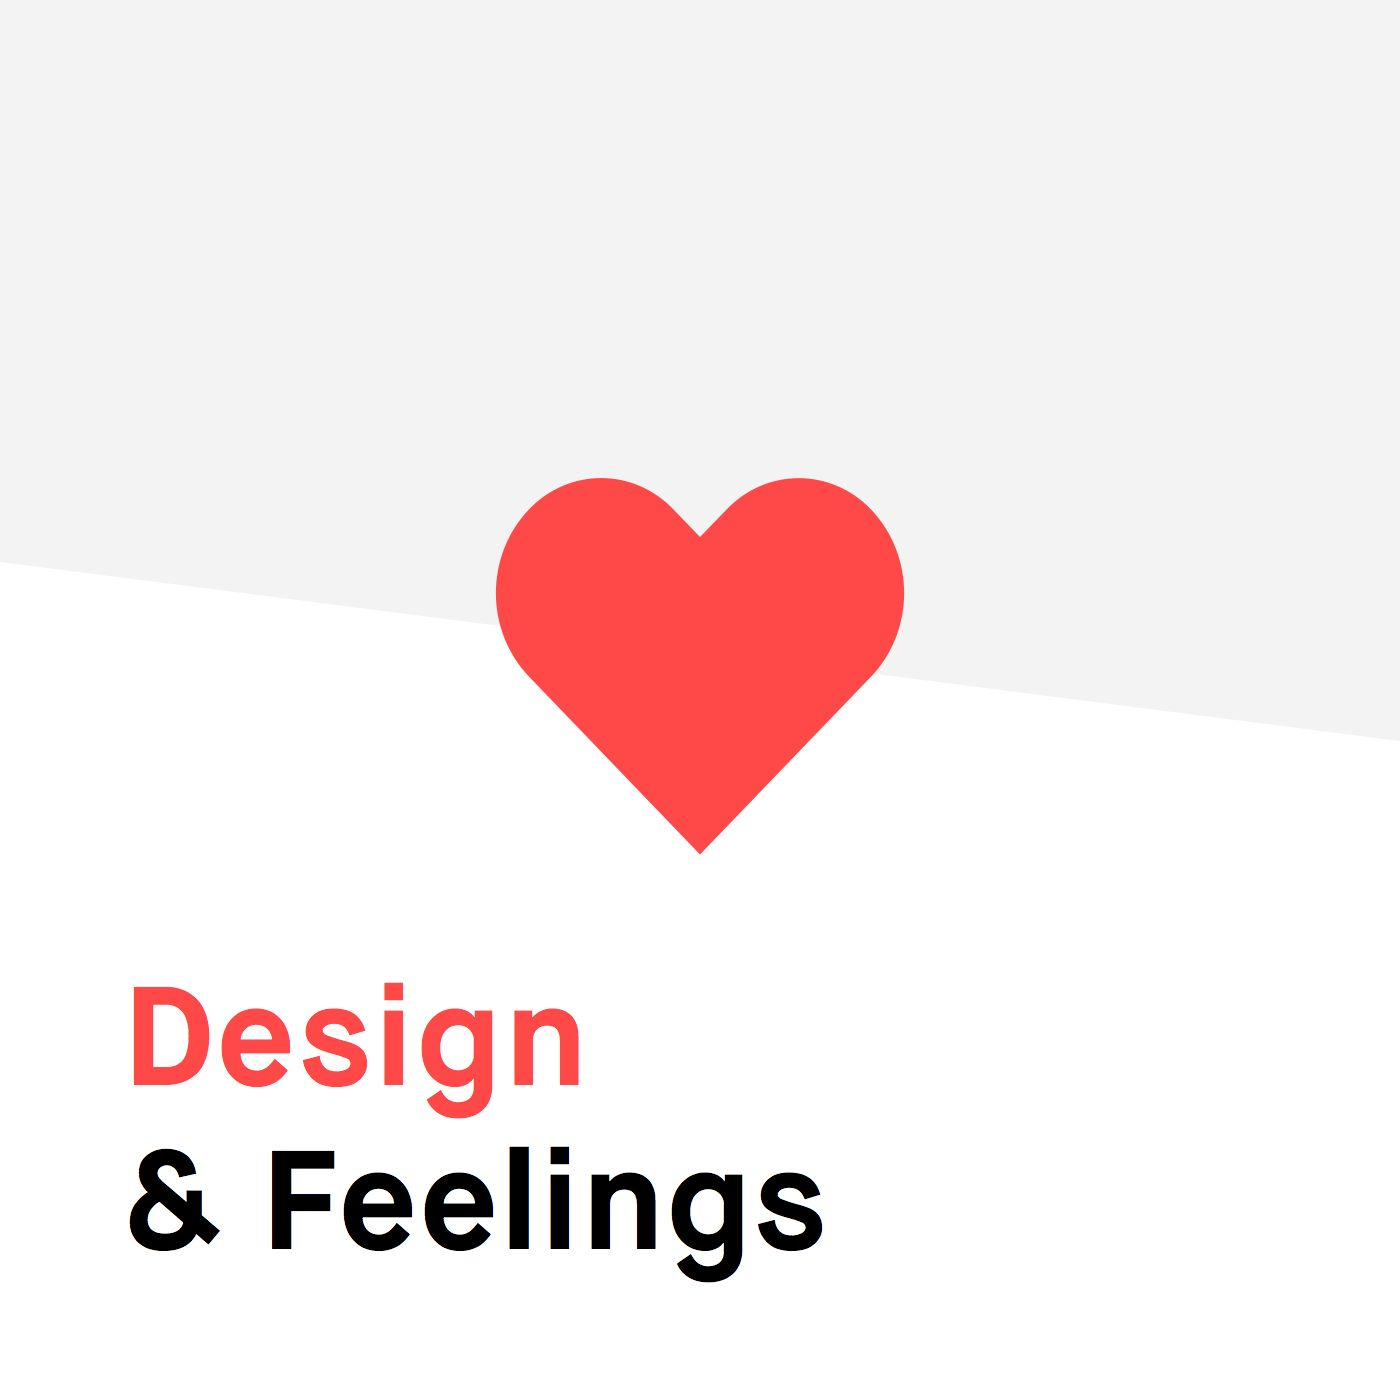 Design & Feelings